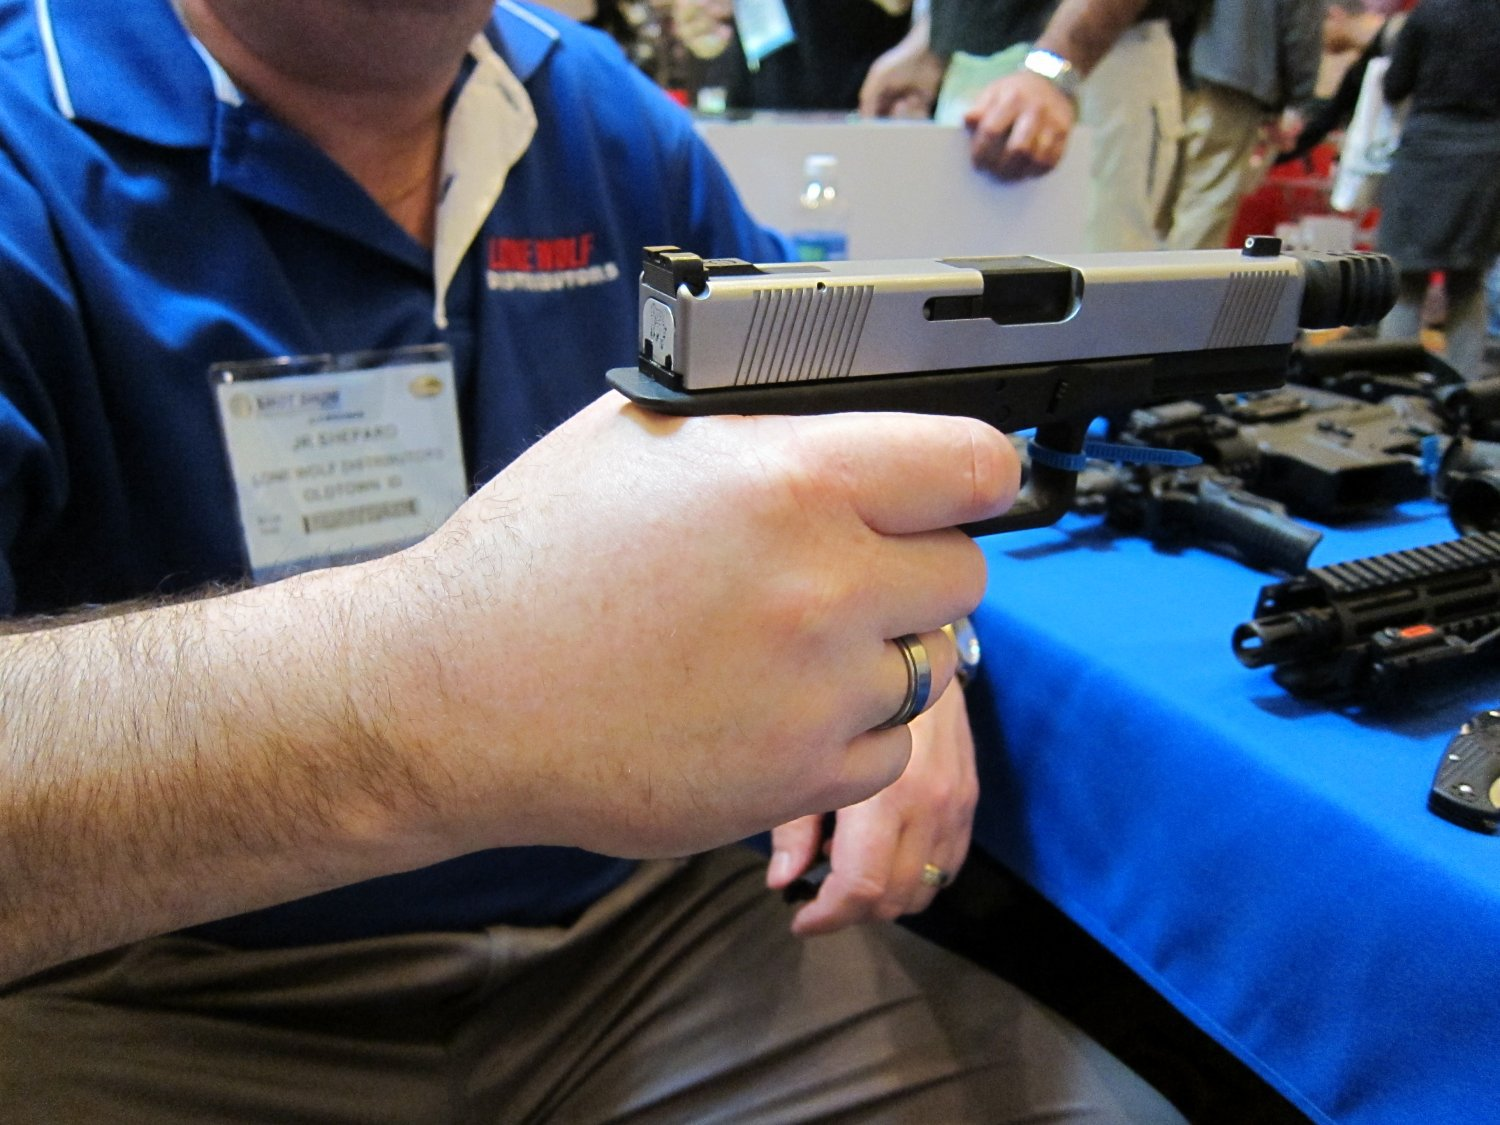 SHOT Show 2010 Lone Wolf 1911 Style Glock 17 Frame 6 <!  :en  >Lone Wolf 1911 Style Glock 17/22 (G17/22) Pistol Frame (Polymer Grip Frame) with Extended Beavertail Tang: Glock Meets 1911 Pistol for the Best of all Worlds? (Pics!)<!  :  >